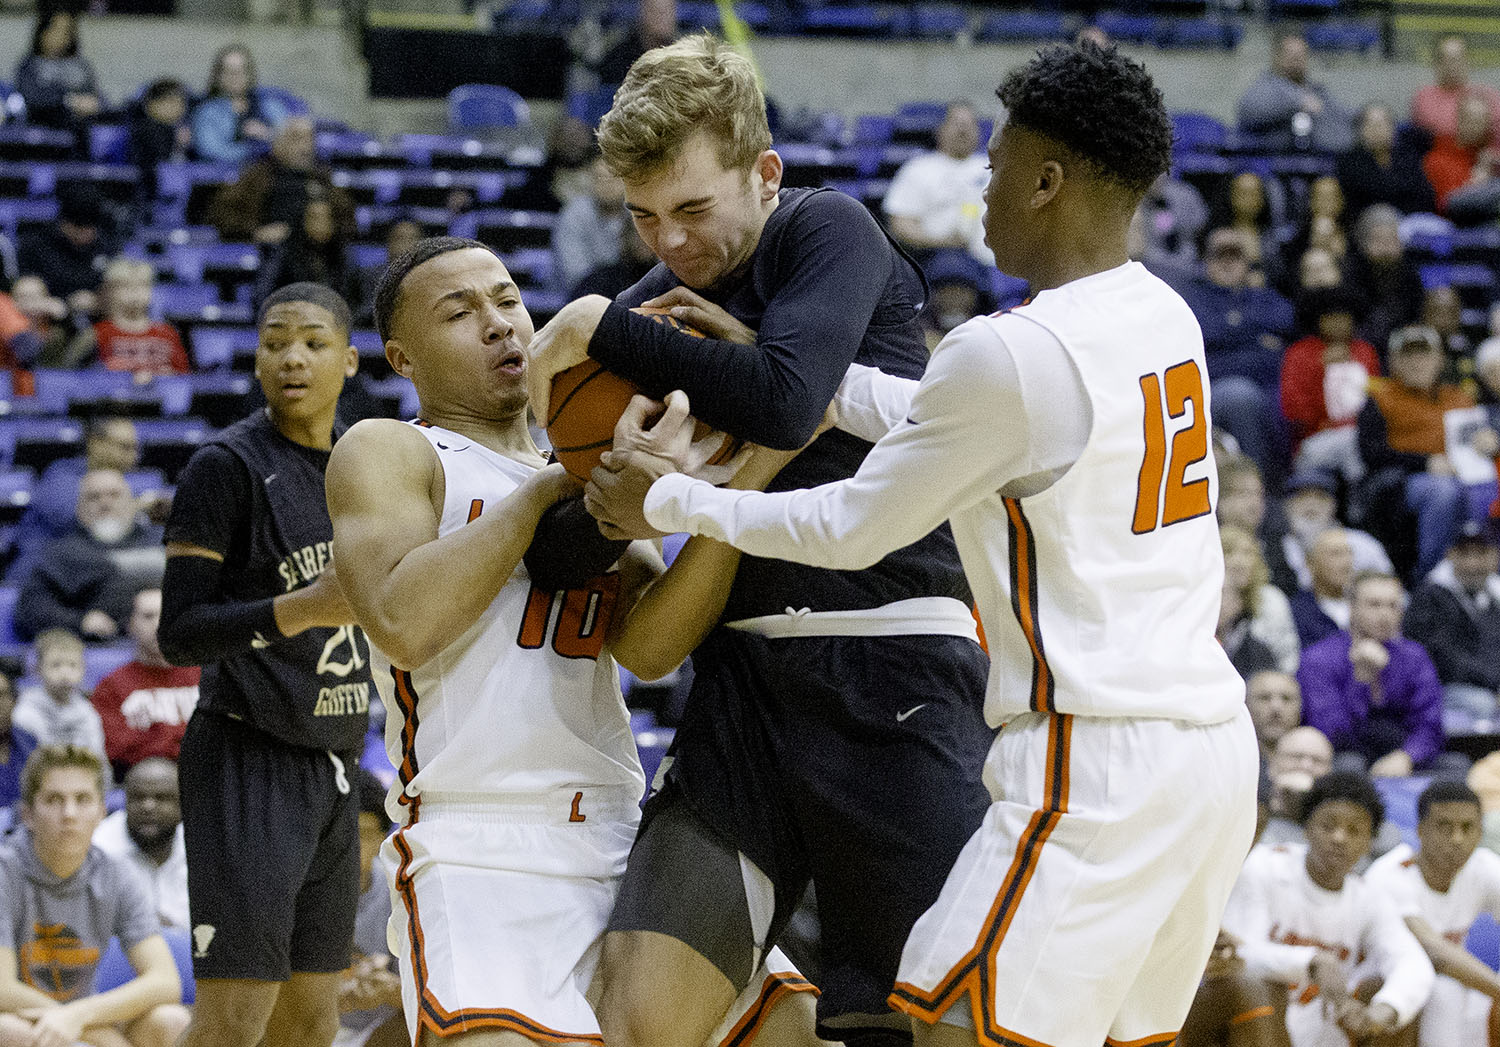 Sacred Heart-Griffin's Charlie Hamilton fights to keep the ball against Lanphier's Shain Chairs and AJ Frazier during the Boys City Tournament at the Bank of Springfield Center Thursday, Jan. 17, 2019.  [Ted Schurter/The State Journal-Register]